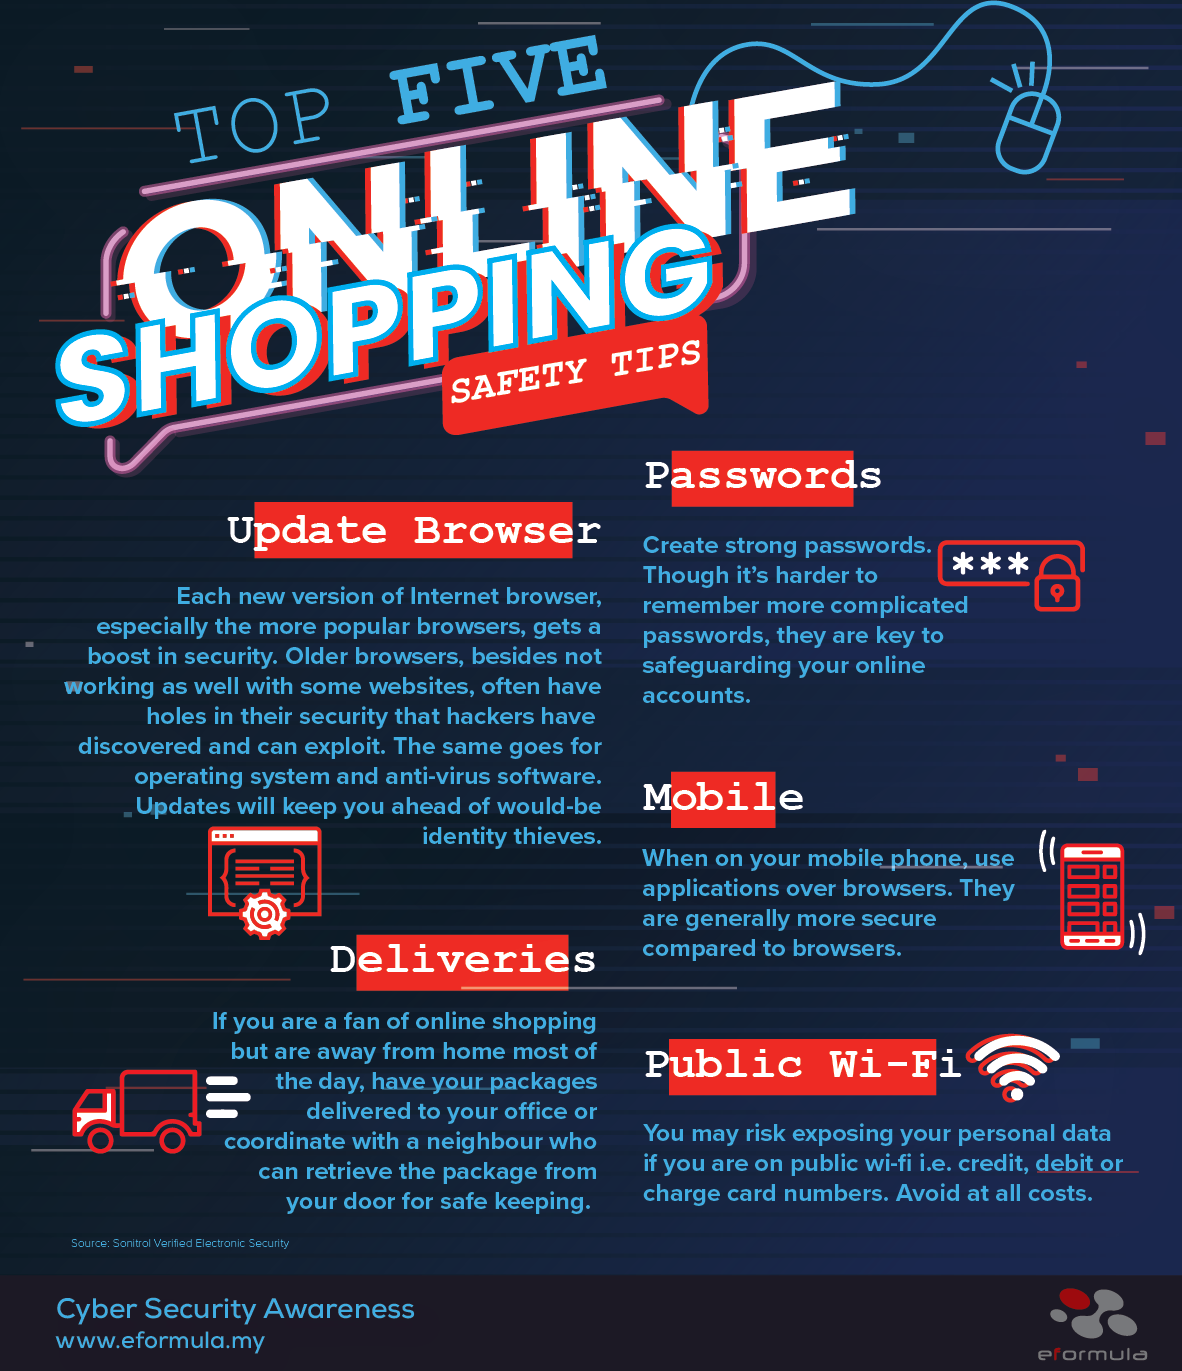 top 5 online shopping safety tips